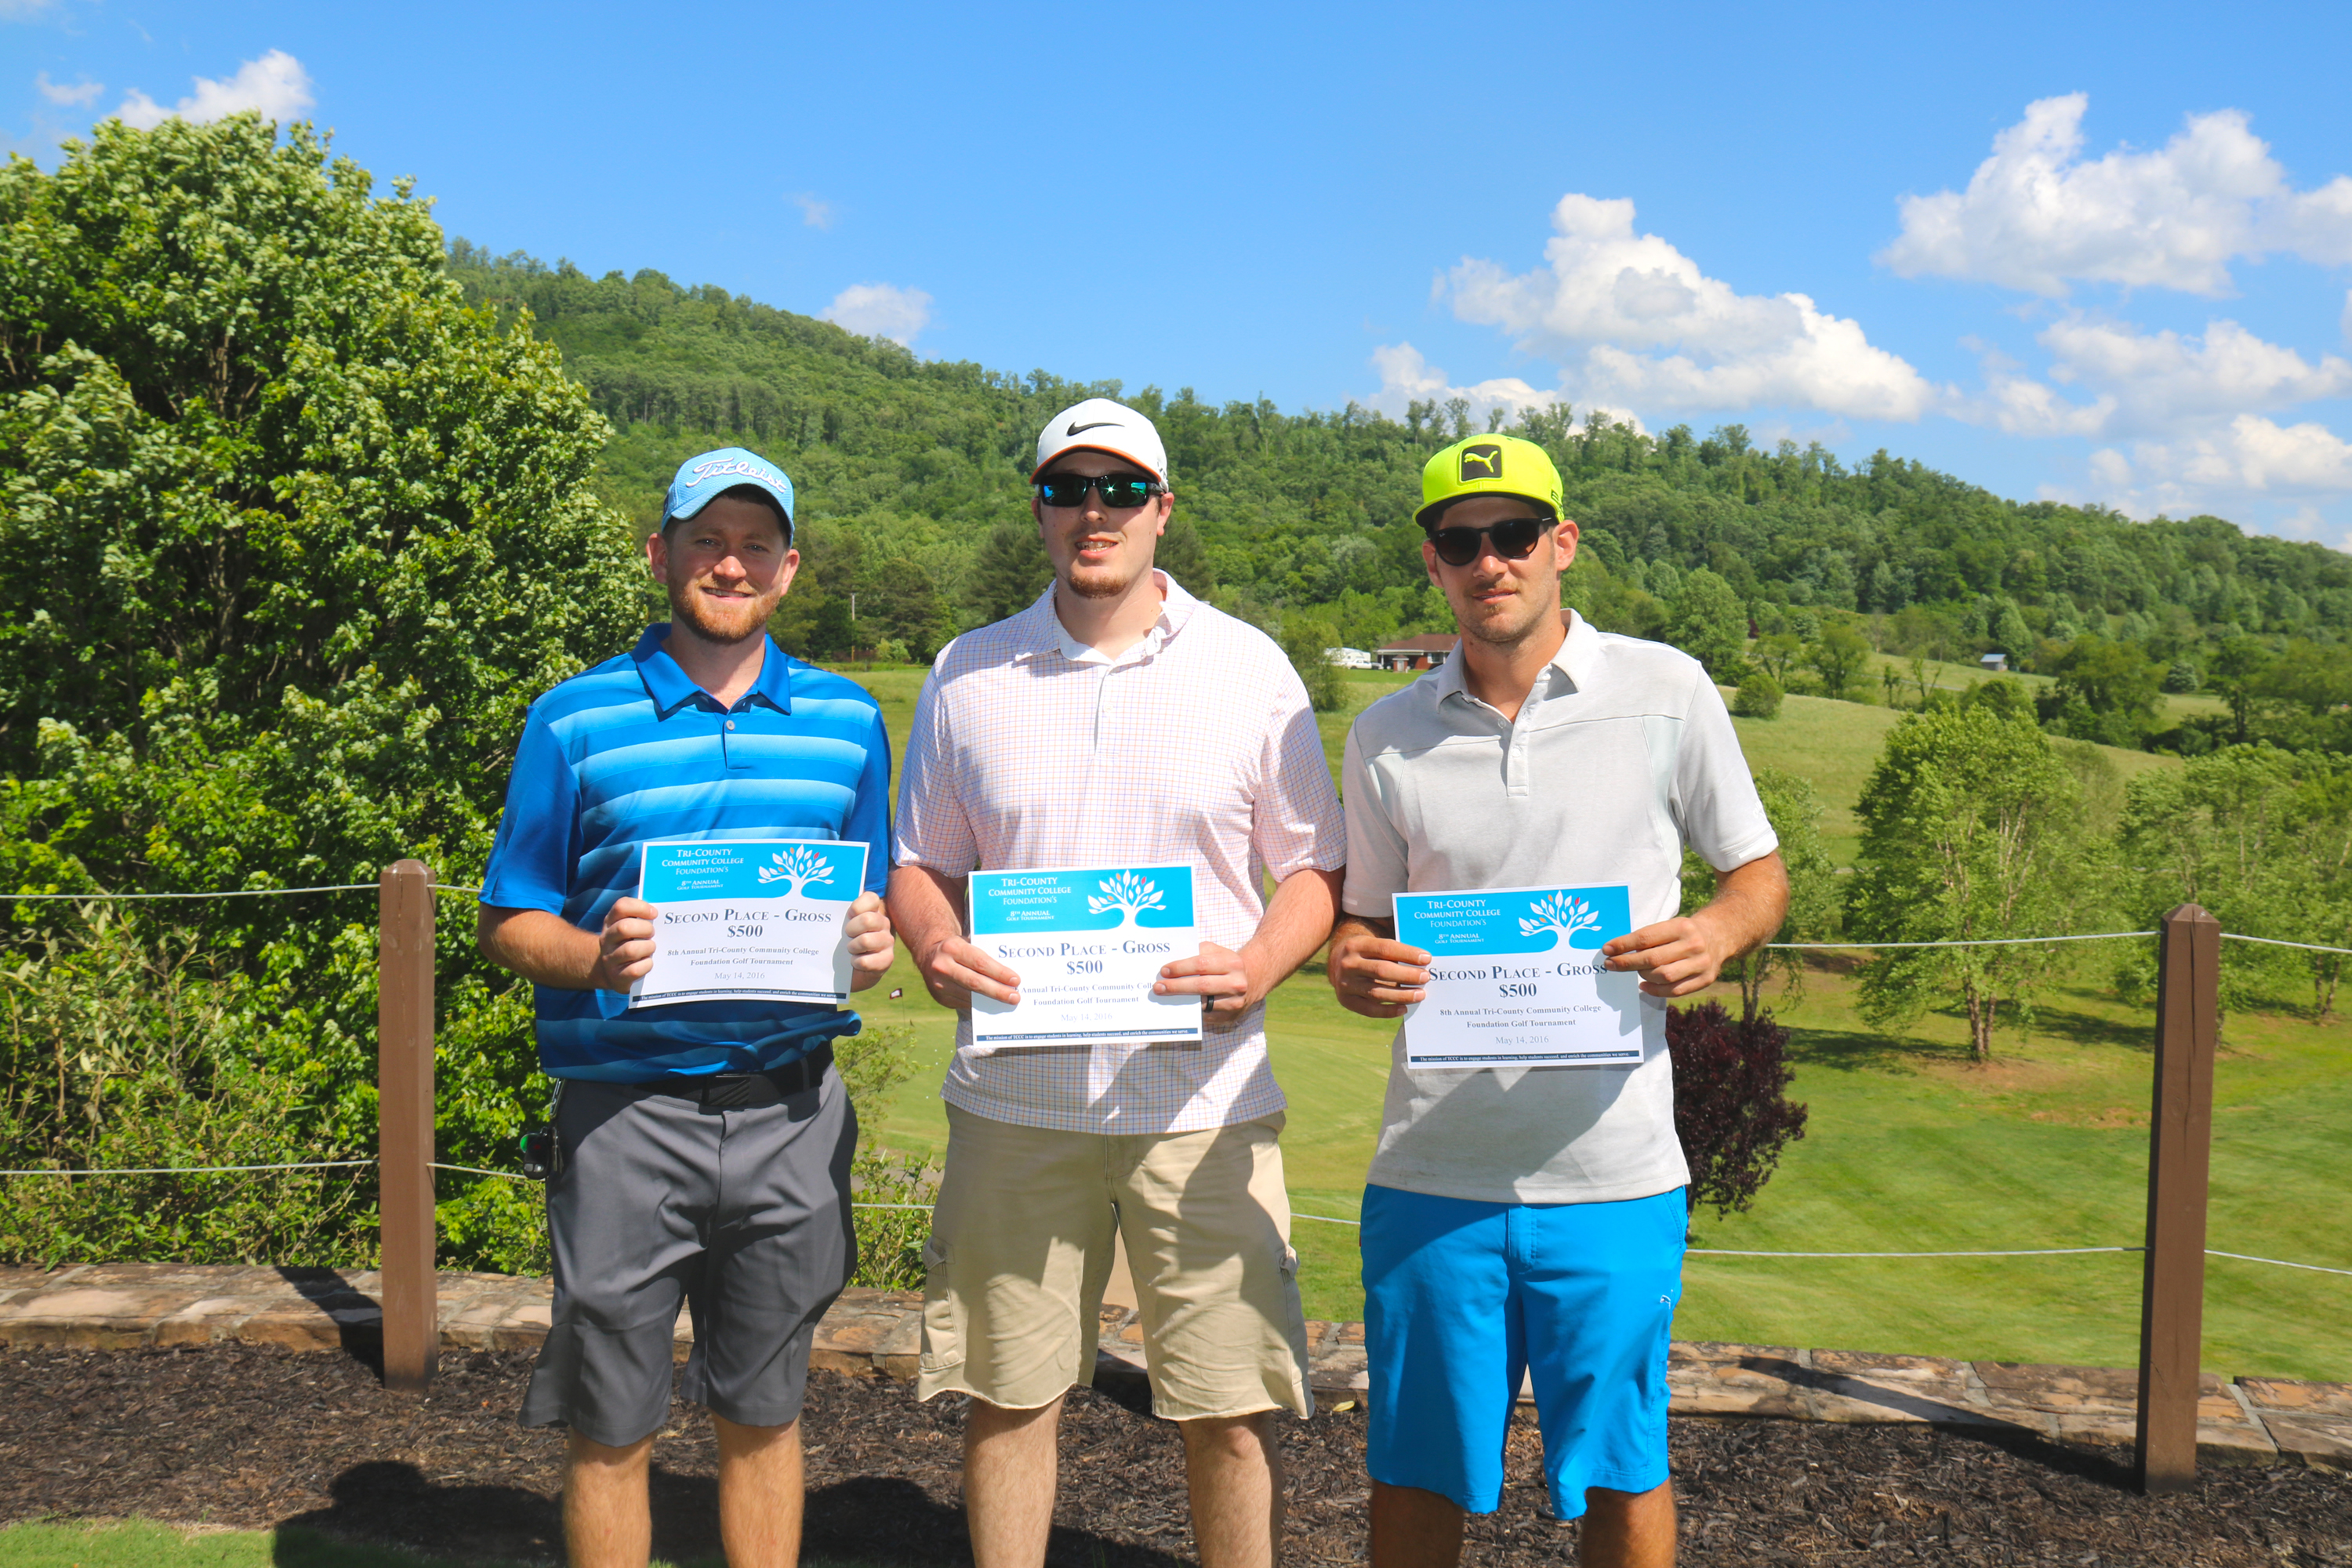 Second place gross $500 prizewinners, Levi Zimmerman, Cort McKeon, and Jesse Puccio, pose with their winnings at the TCCC Foundation's 8th Annual Golf Tournament at The Ridges Country Club in Hayesville on May 14.